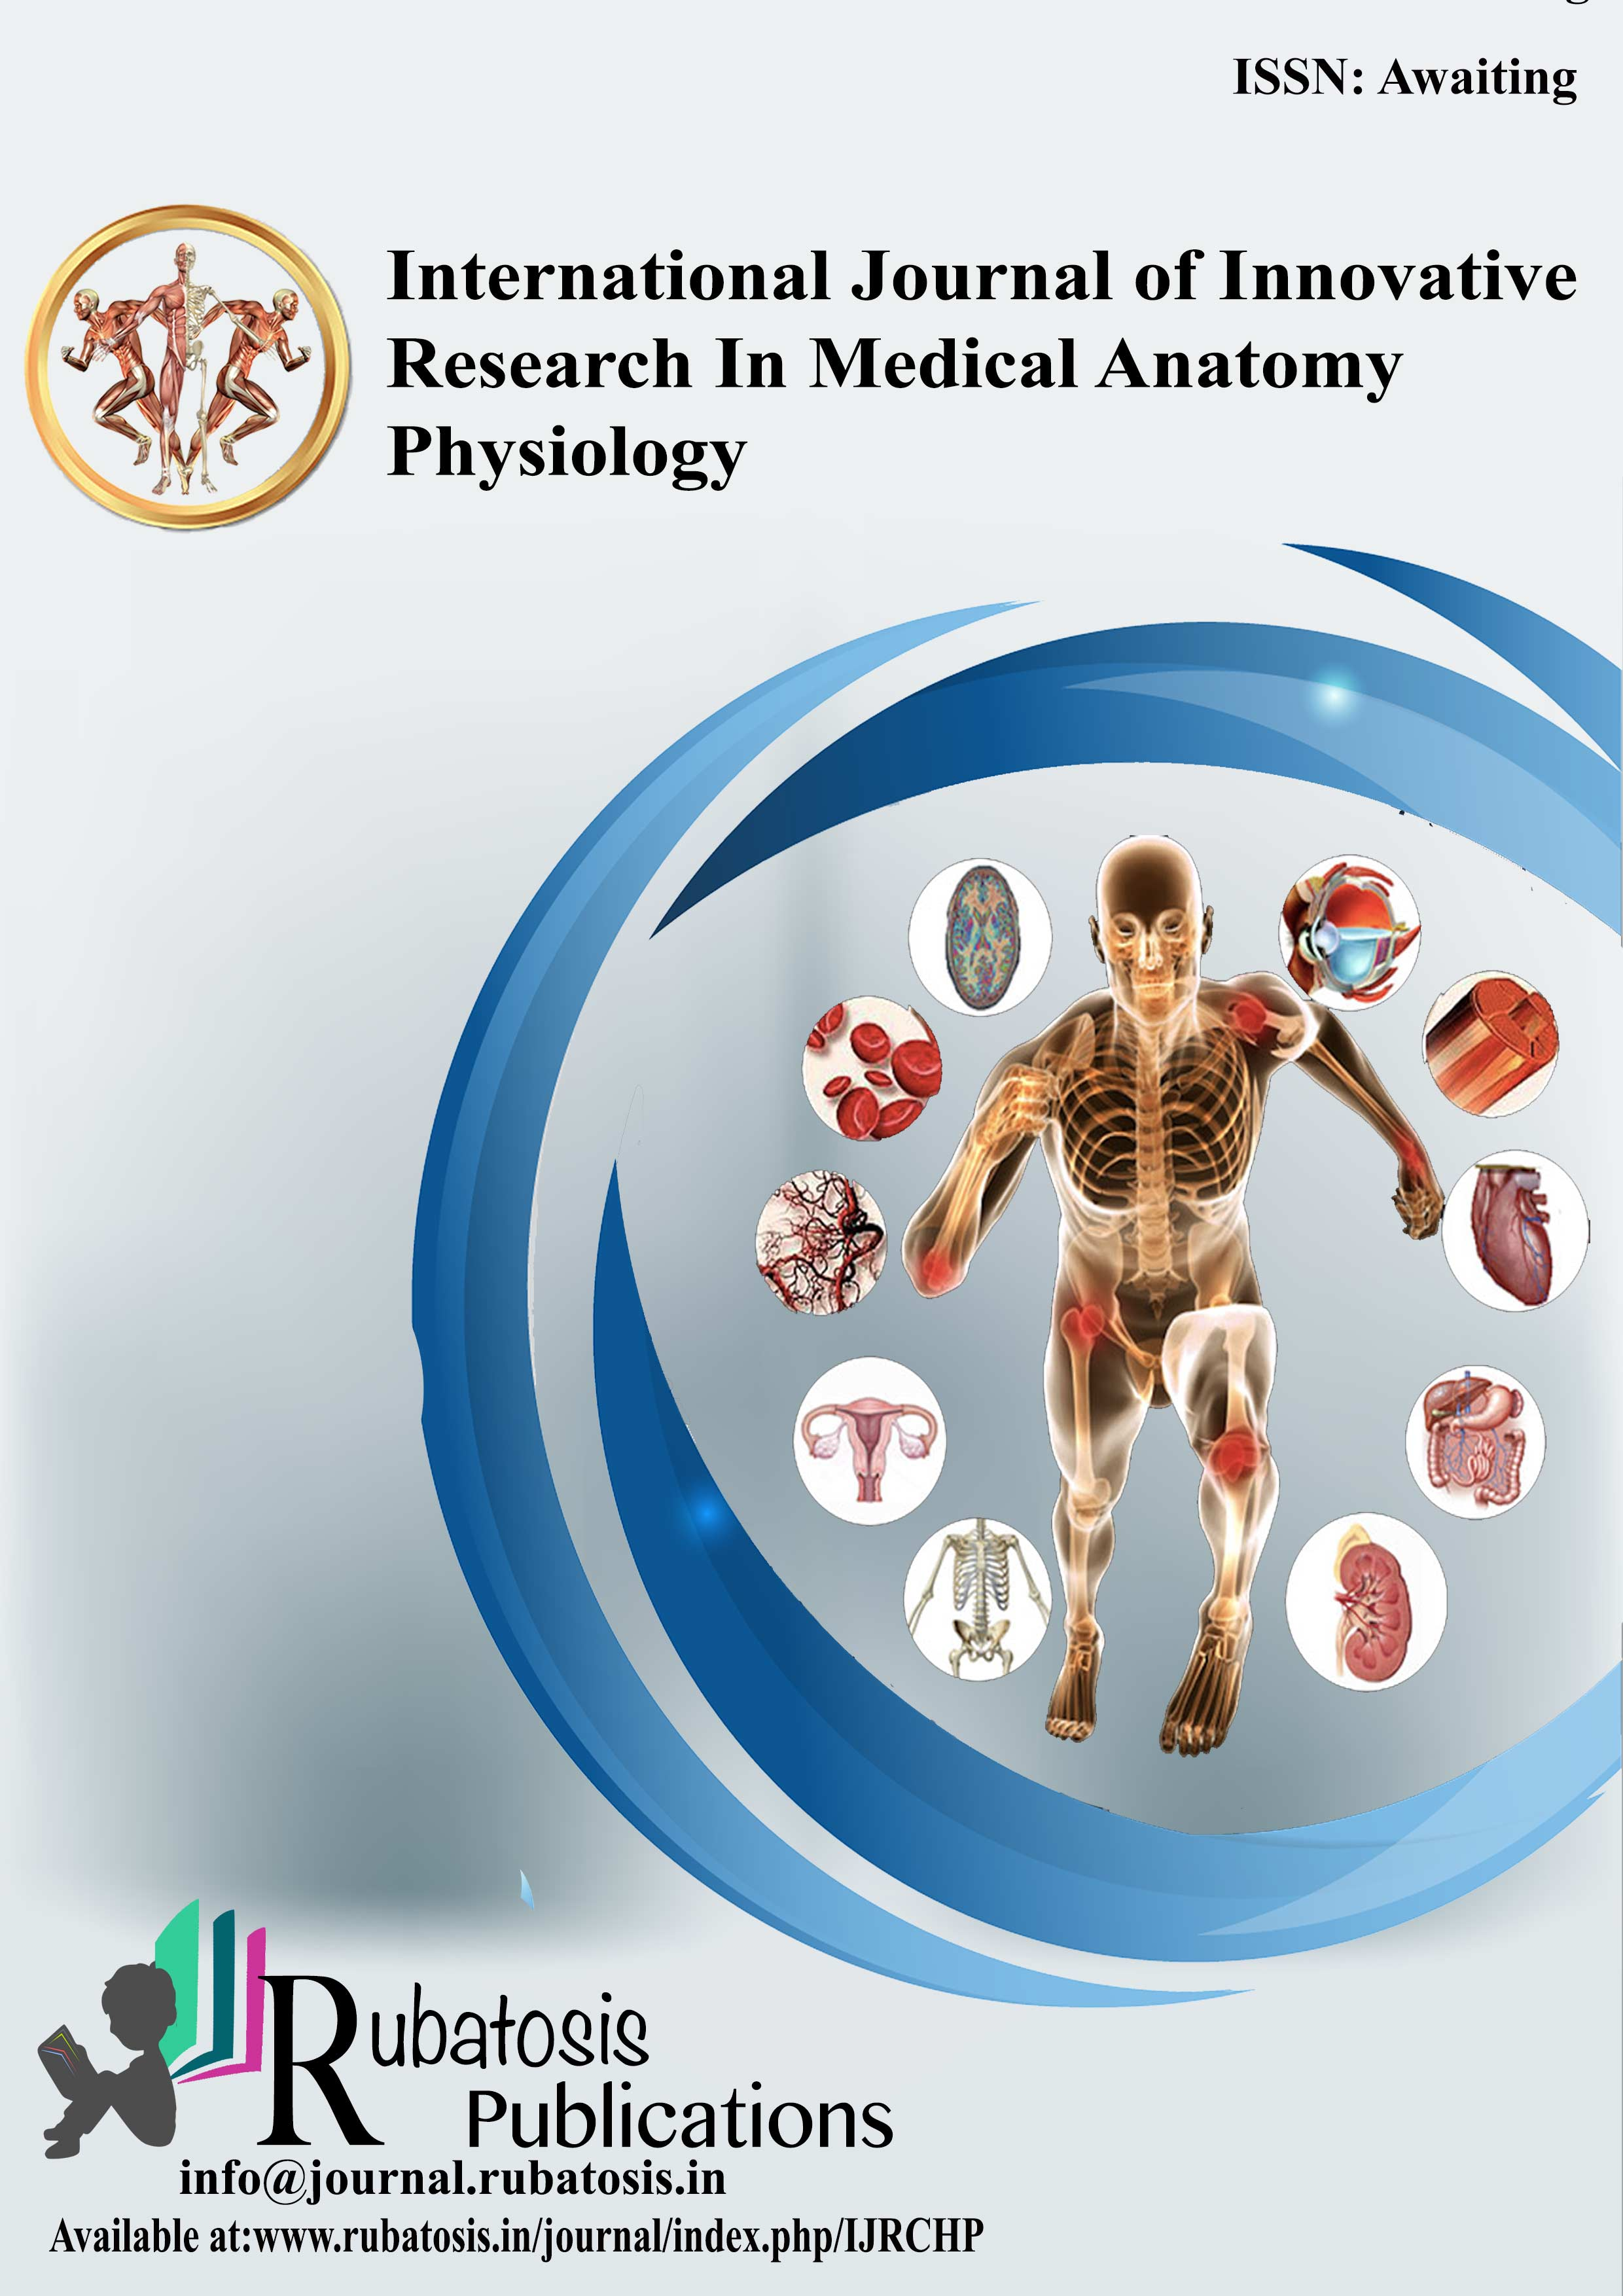 International Journal of Innovative Research In Medical Anatomy and Physiology